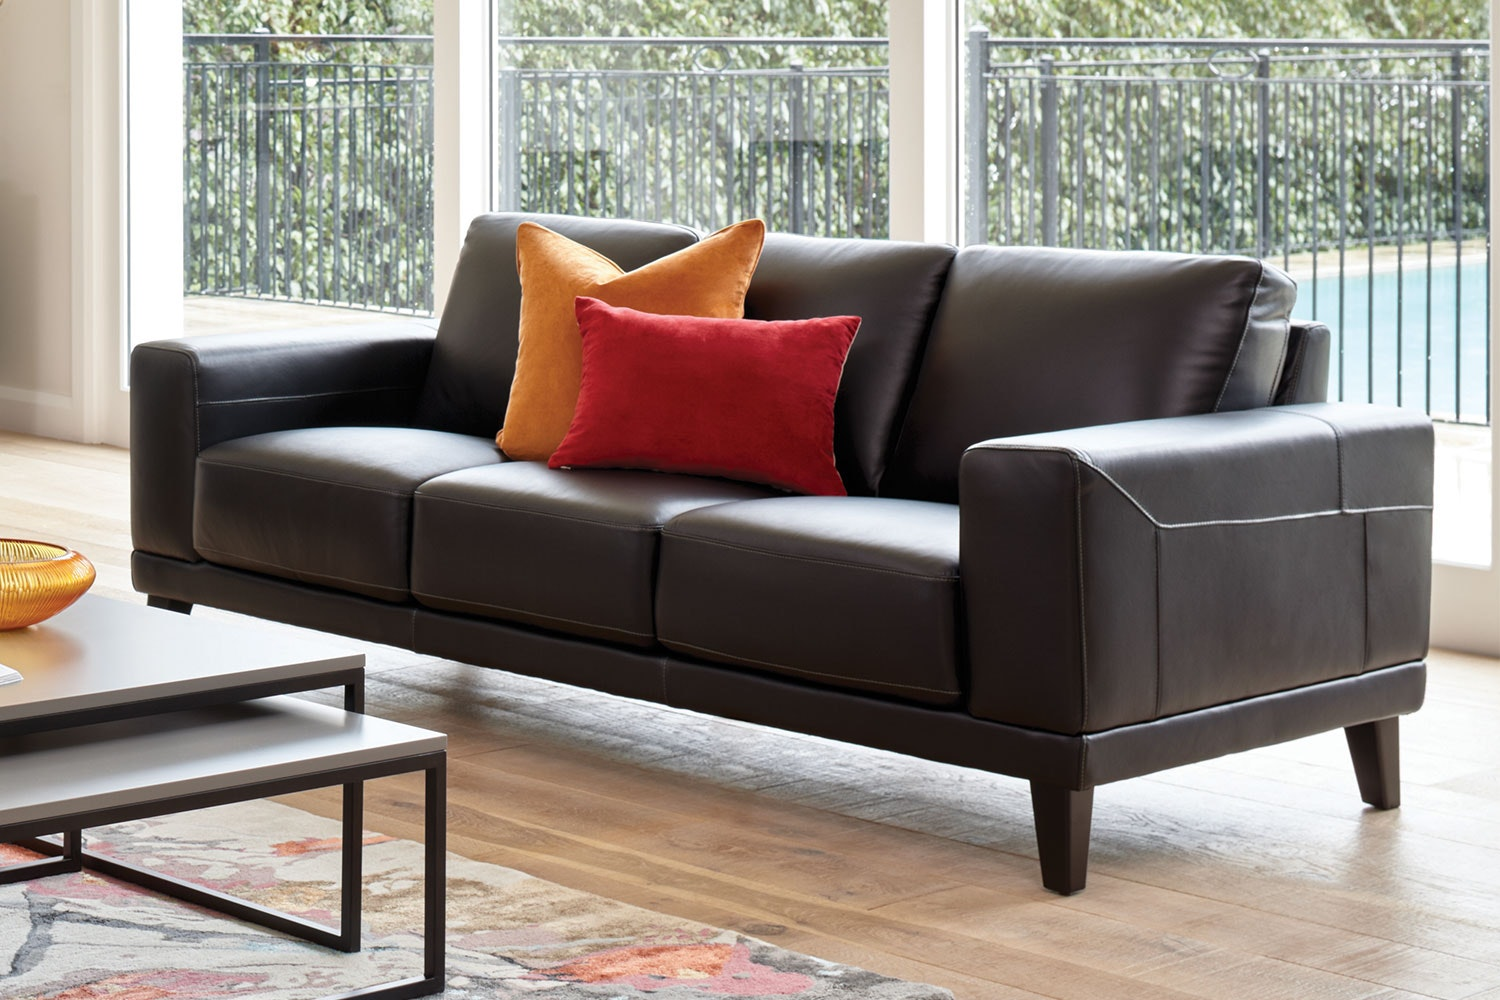 Aries 3 Seater Leather Sofa ...